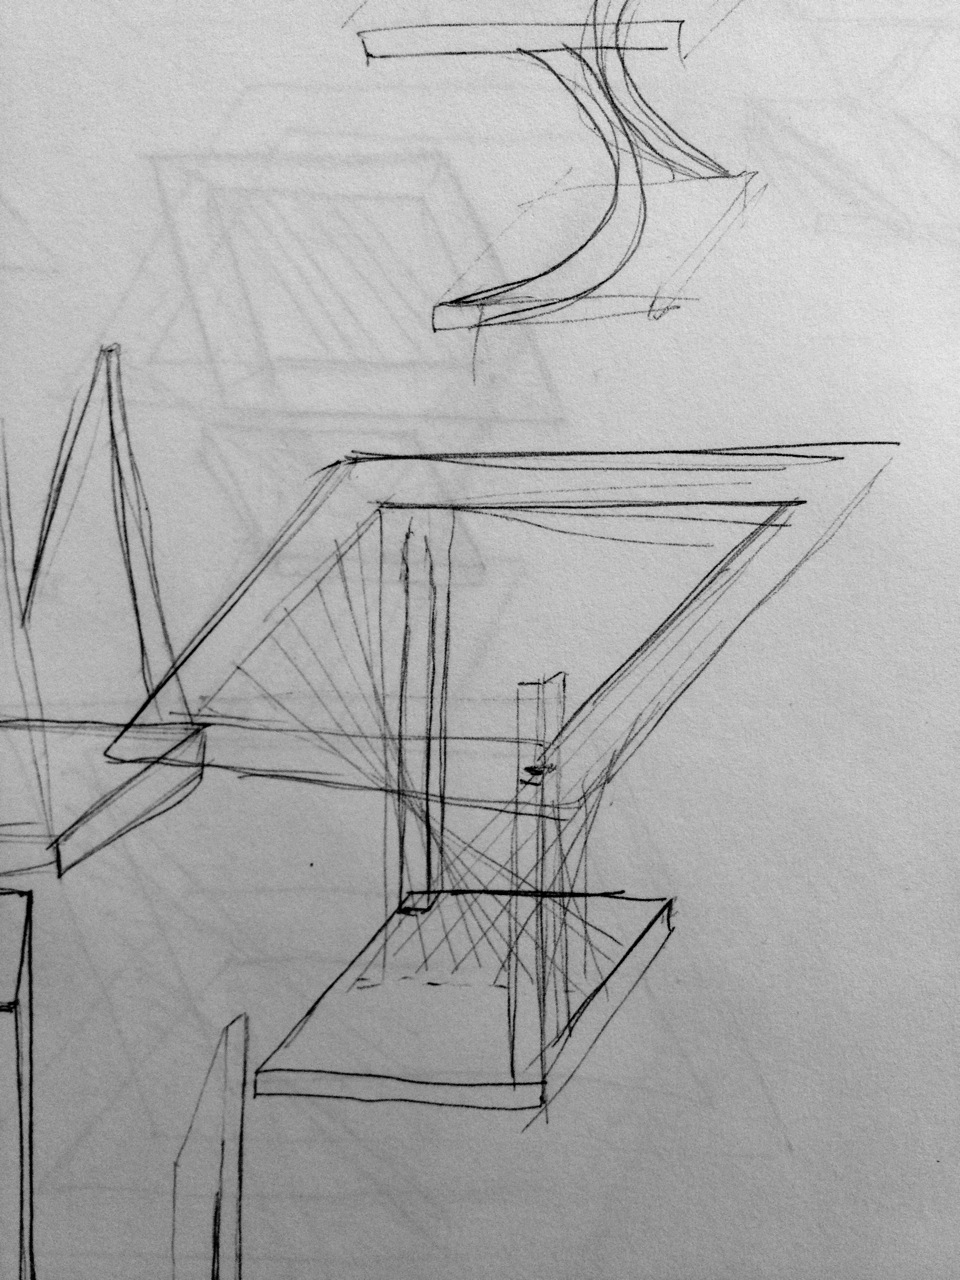 The initial brainstorm sketch for what would eventually become the Balance End Table